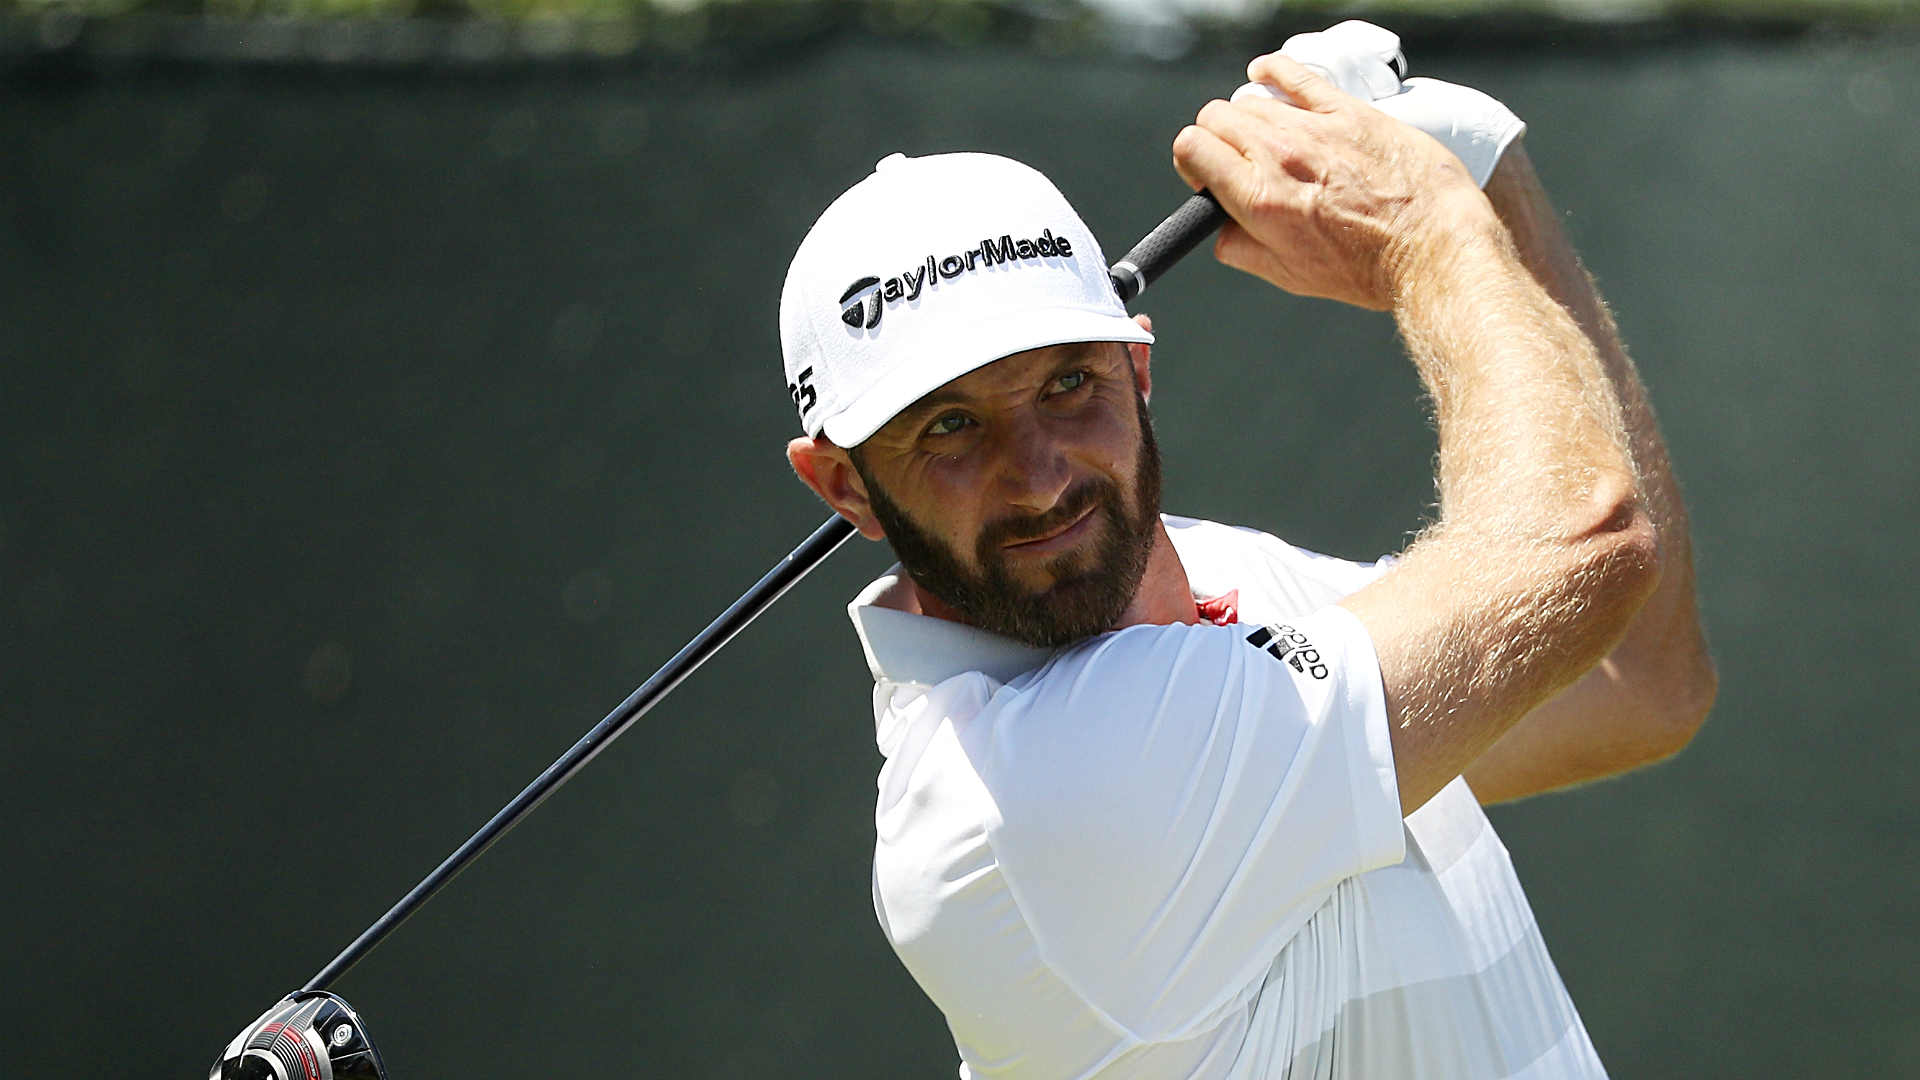 Dustin Johnson Majors: Has DJ Won One?